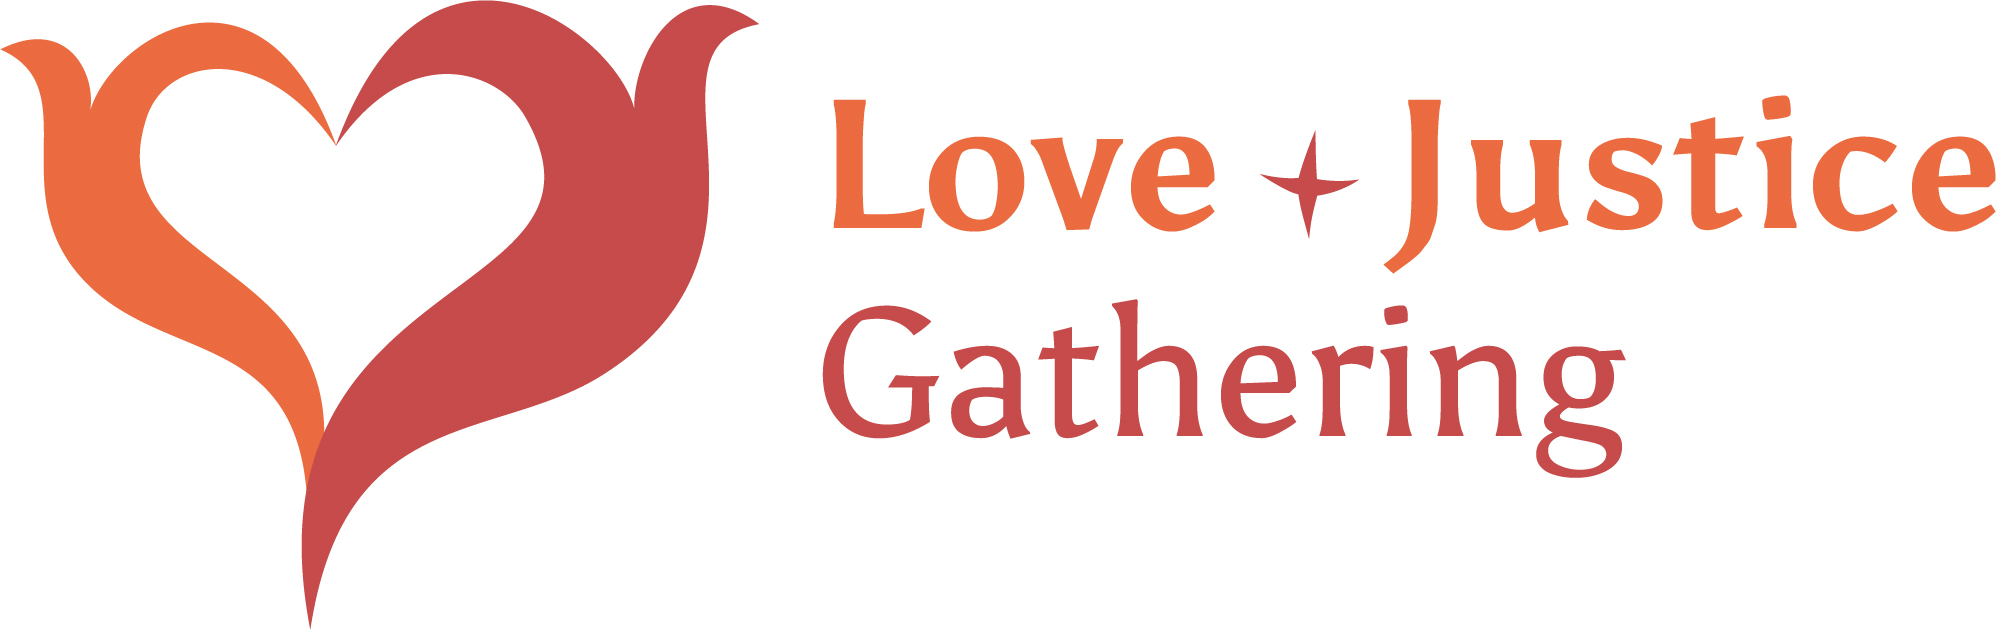 Logo for the gathering, featuring red and orange flames making a heart shape.